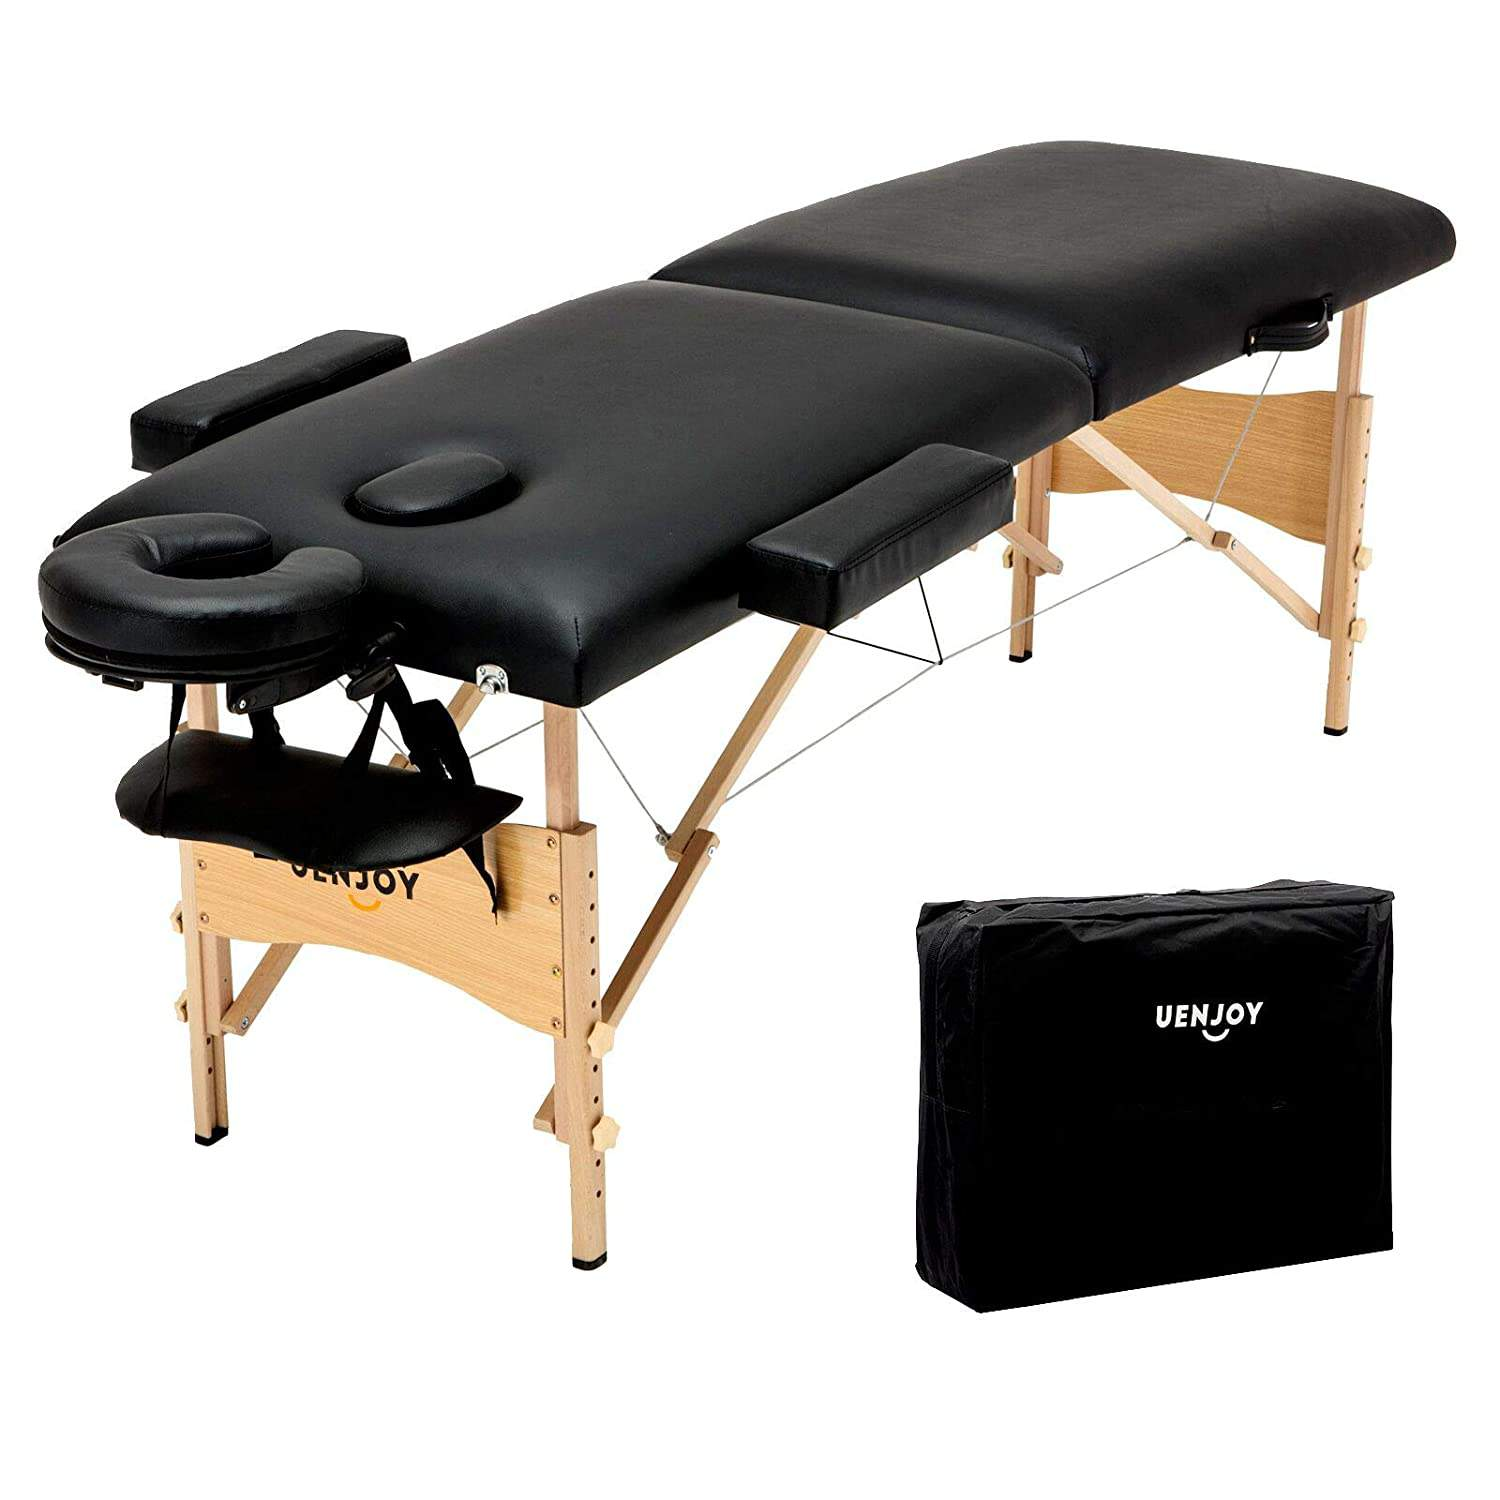 From some reviews, you have 3 groups which suggest about the price of the the lightweight massage table, including inexpensive, mid-range, expensive, it results in here: The inexpensive lightweight massage table price With the inexpensive lightweight massage table price, you should buy the best one with a limited time of warranty, the products you know about the quality or damages time The mid-range lightweight massage table price For the products about inexpensive lightweight massage table prices, you should buy the products that have a special design, like the material as upholstery or the products that have the functions that have the attachment as headrest, or providing the functions as the backrest, footrest. The expensive lightweight massage table price  With the expensive lightweight massage table price, you should buy the products from the high quality brand, have good warranty detail, and have a lot of functions.